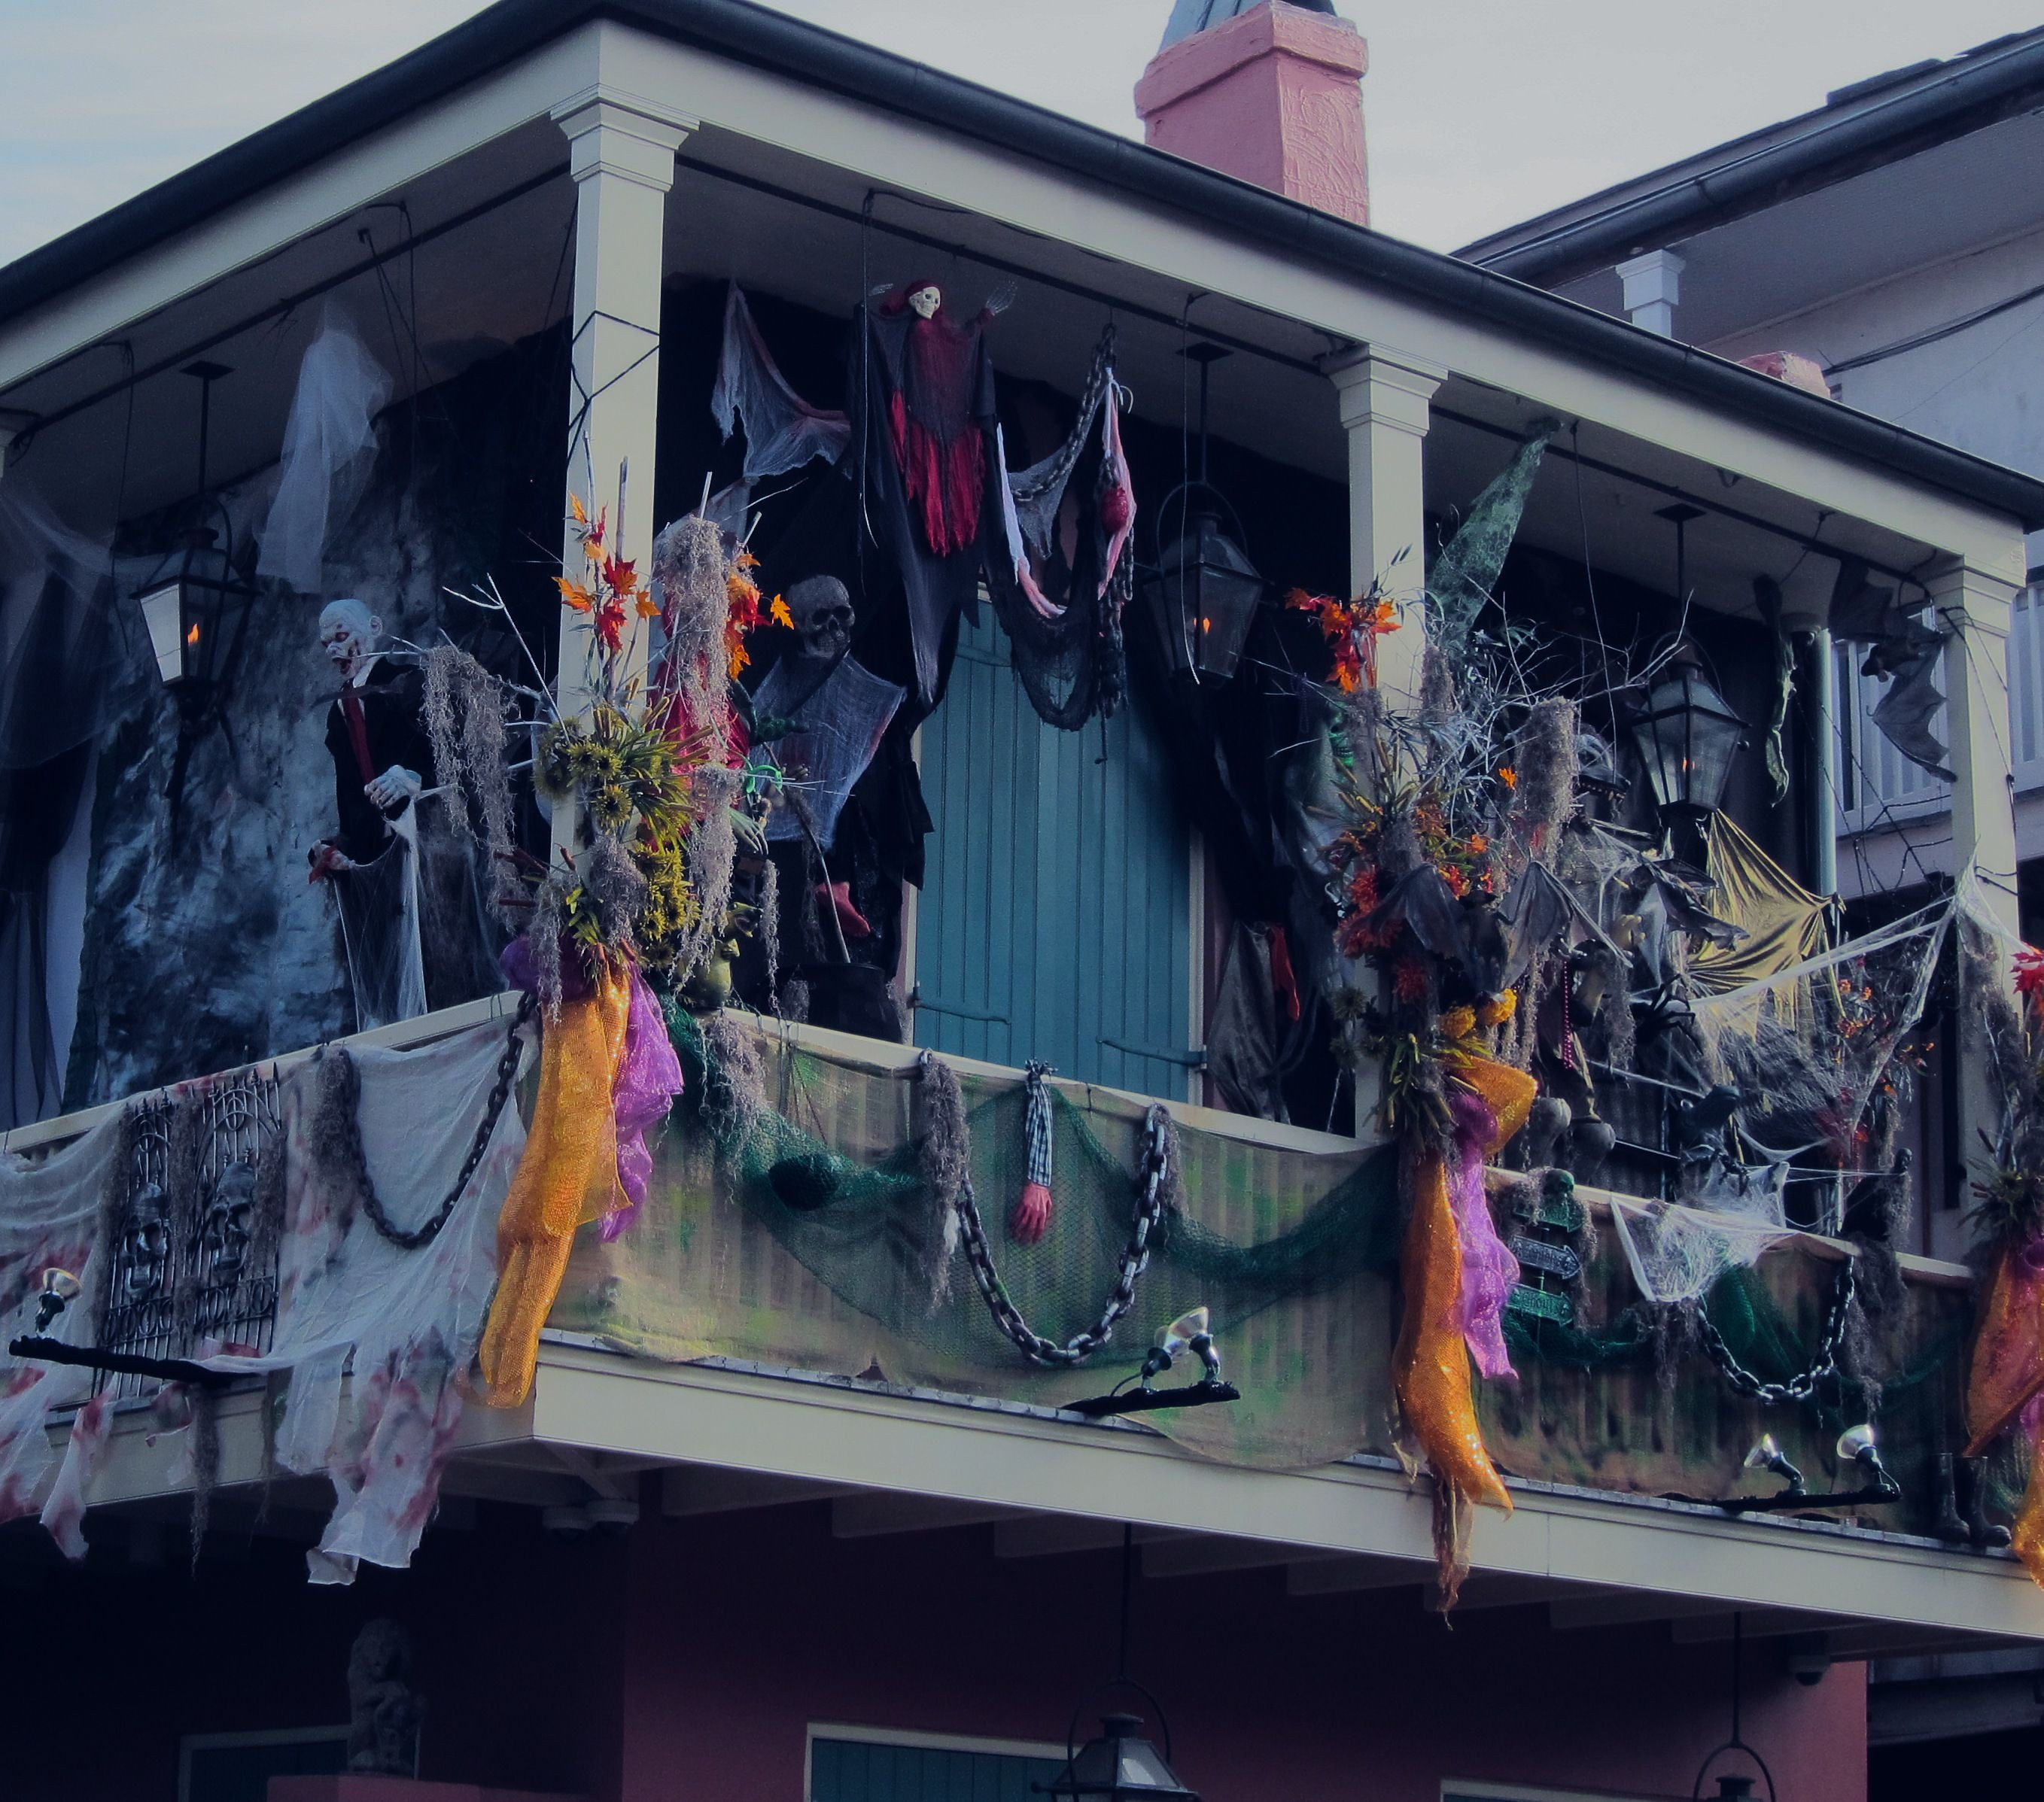 Porch Decorated For Halloween  Halloween decorations New Orleans balcony French Quarter